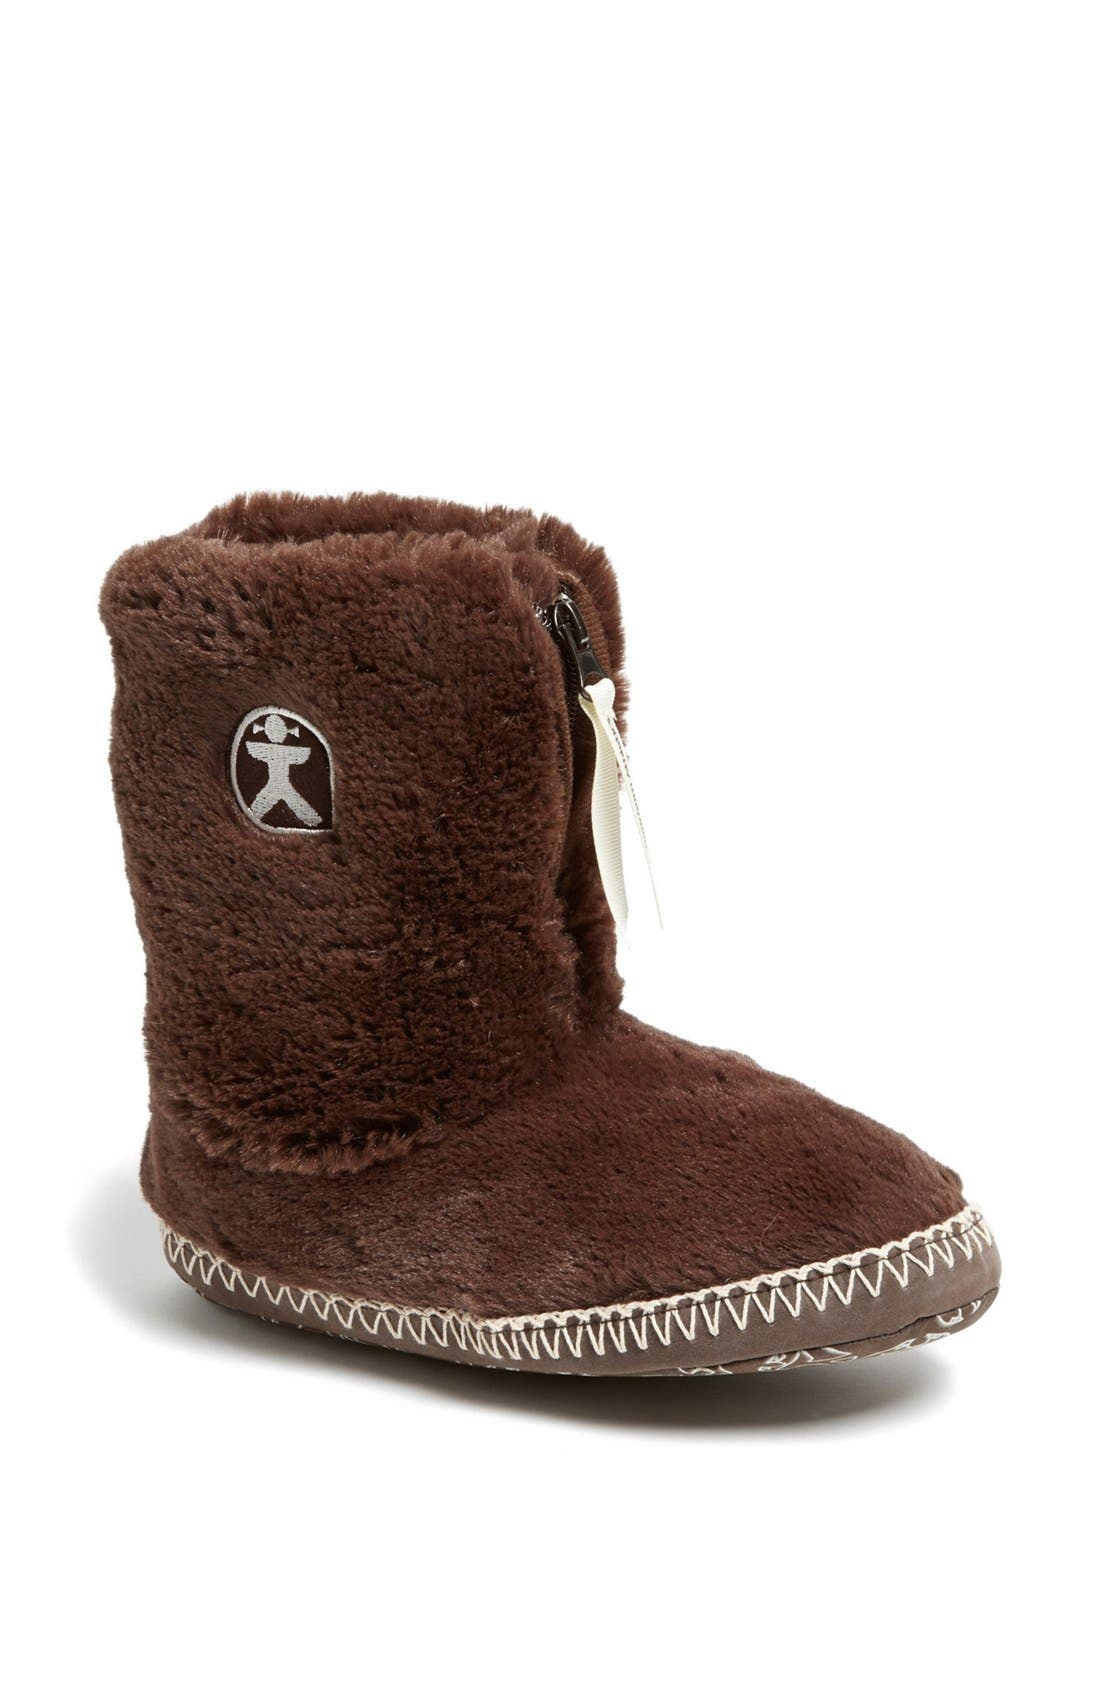 Main Image - Bedroom Athletics 'Marilyn' Faux Fur Bootie Slipper